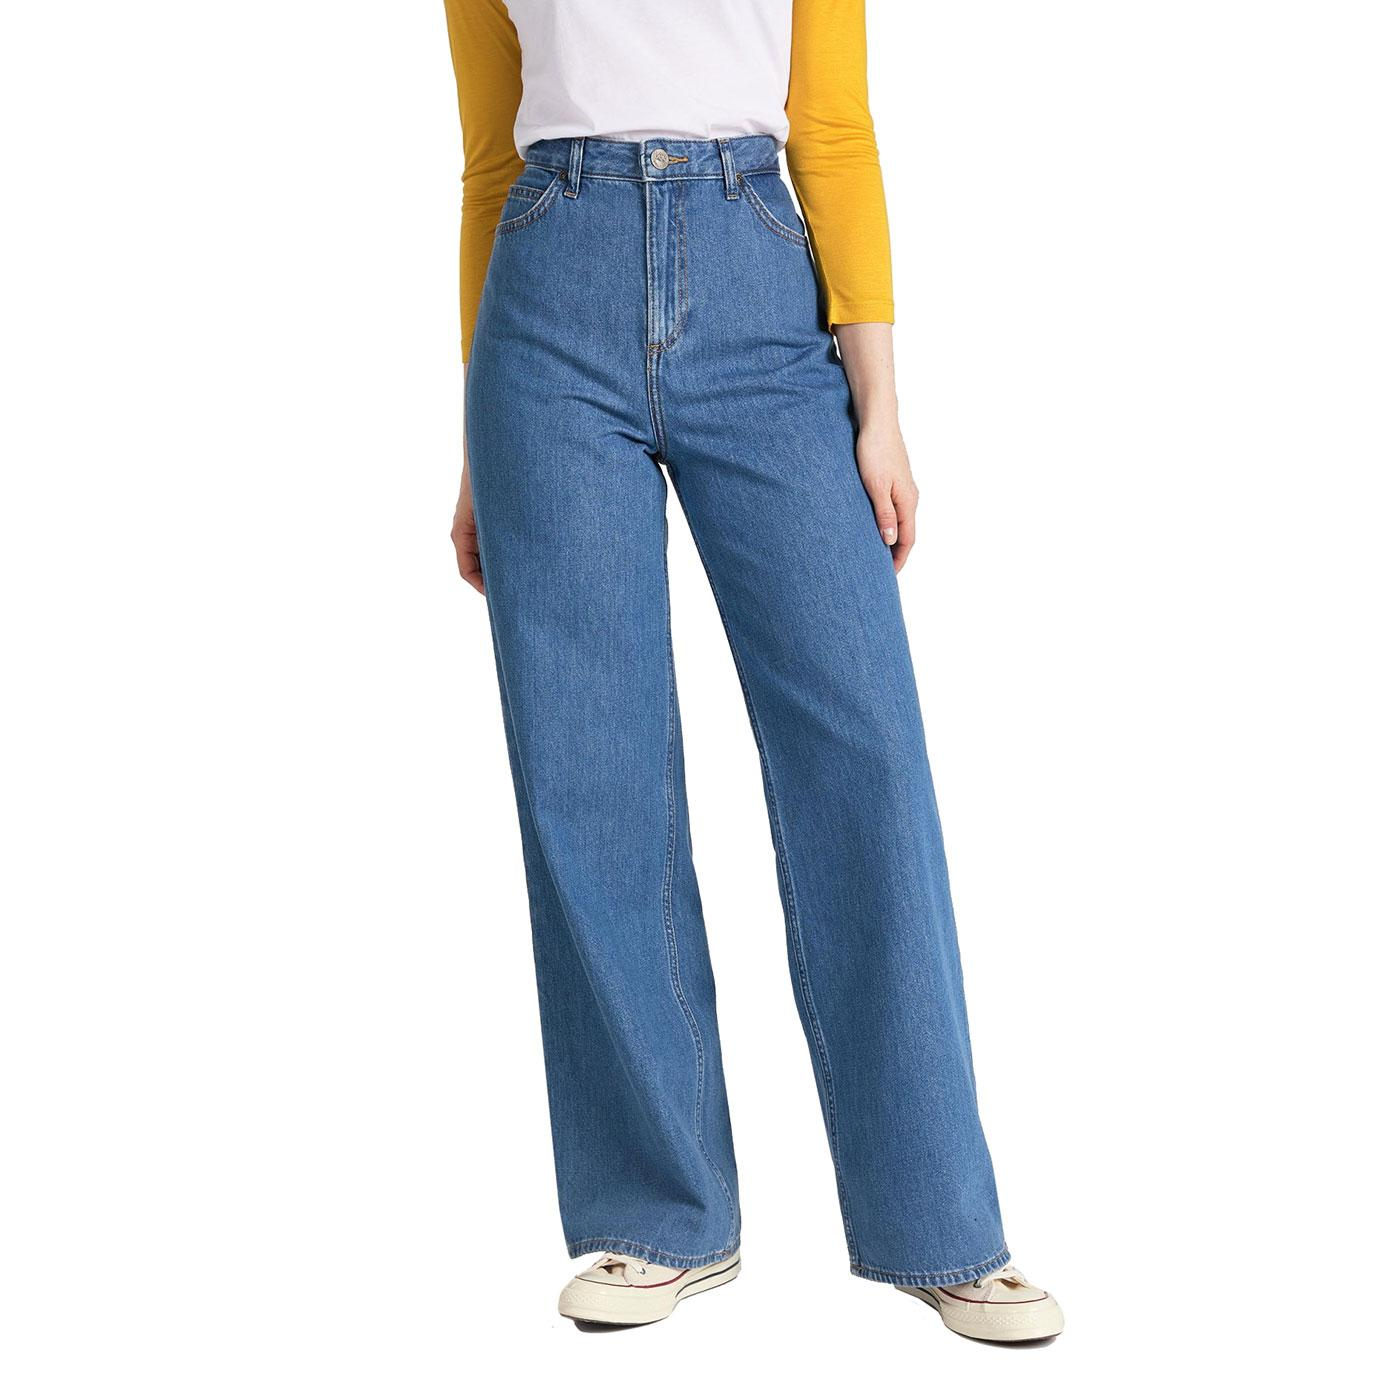 LEE JEANS Women's Retro A-line High Waisted Flares